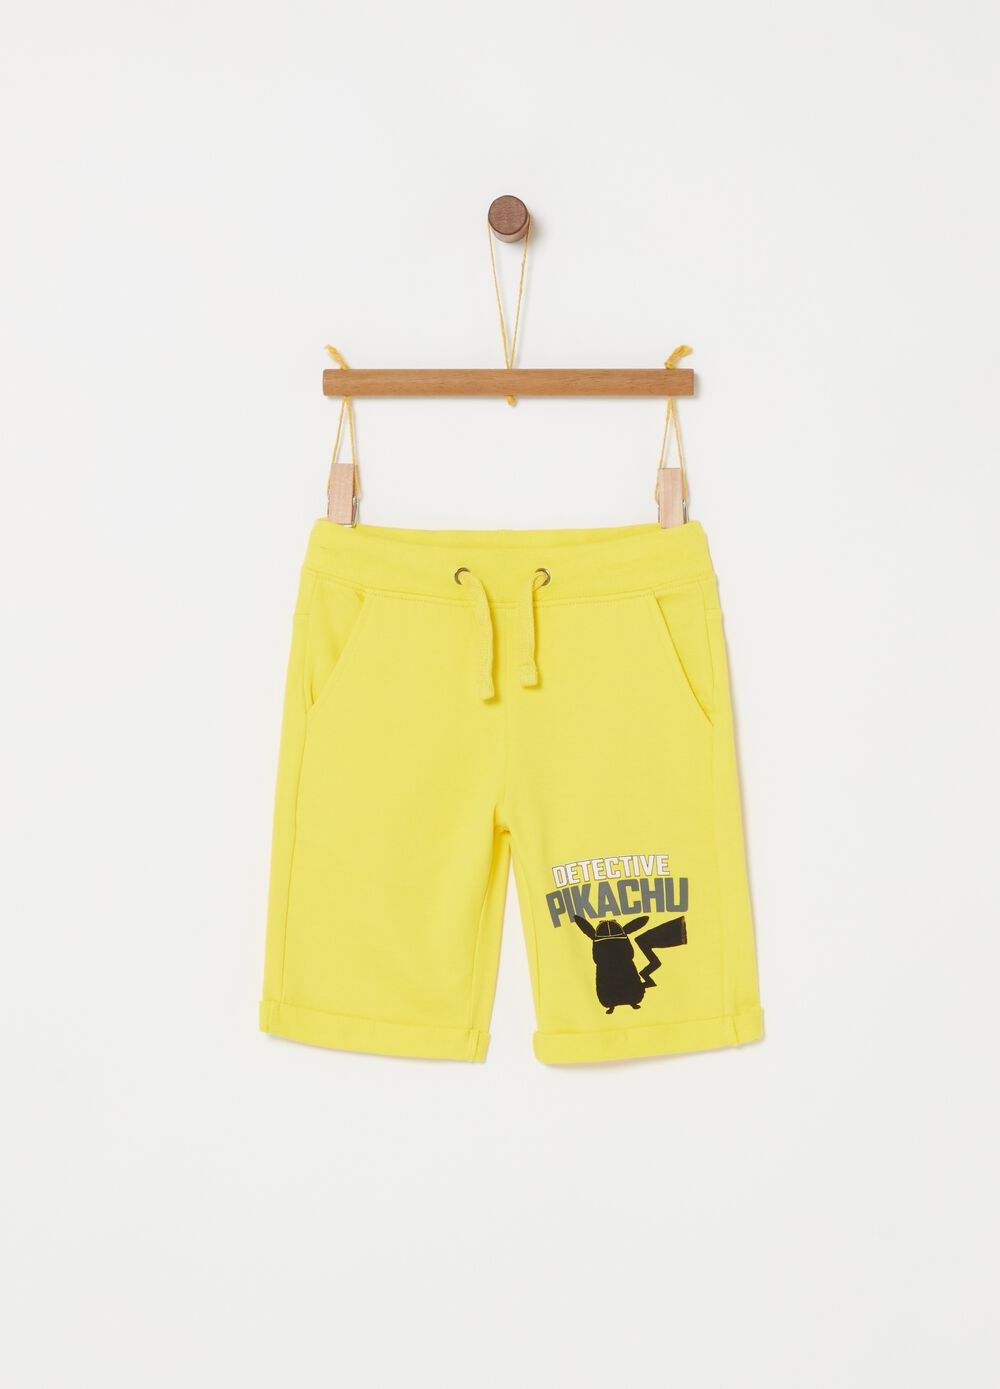 Shorts with Pikachu print and pockets